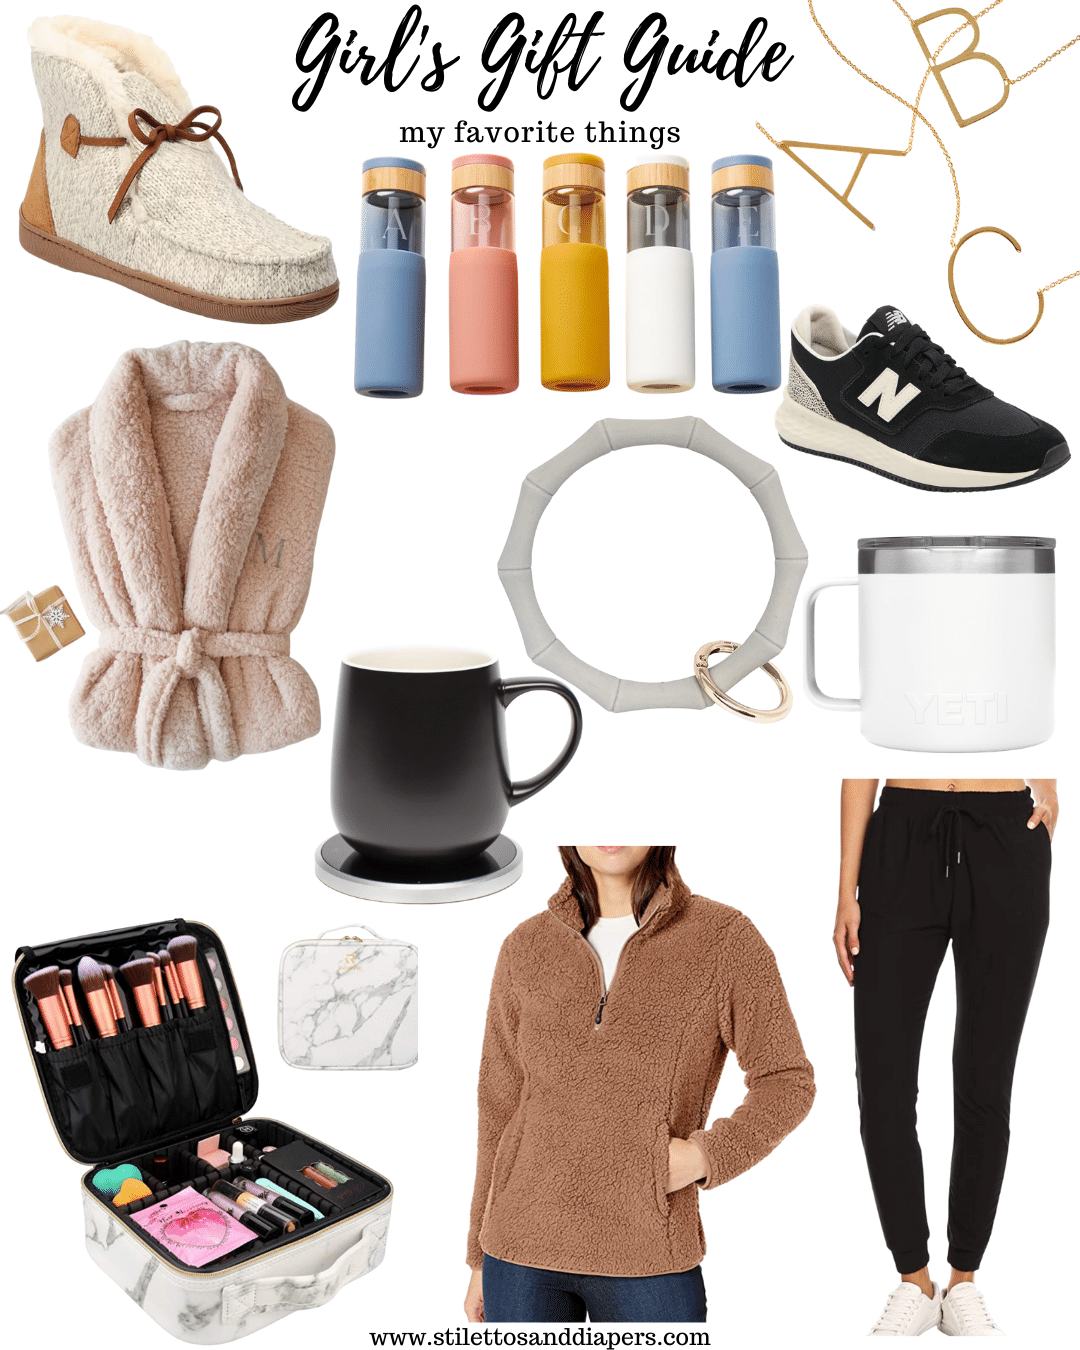 Girl's Gift Guide, Stilettos and Diapers, Best girl gifts 2020